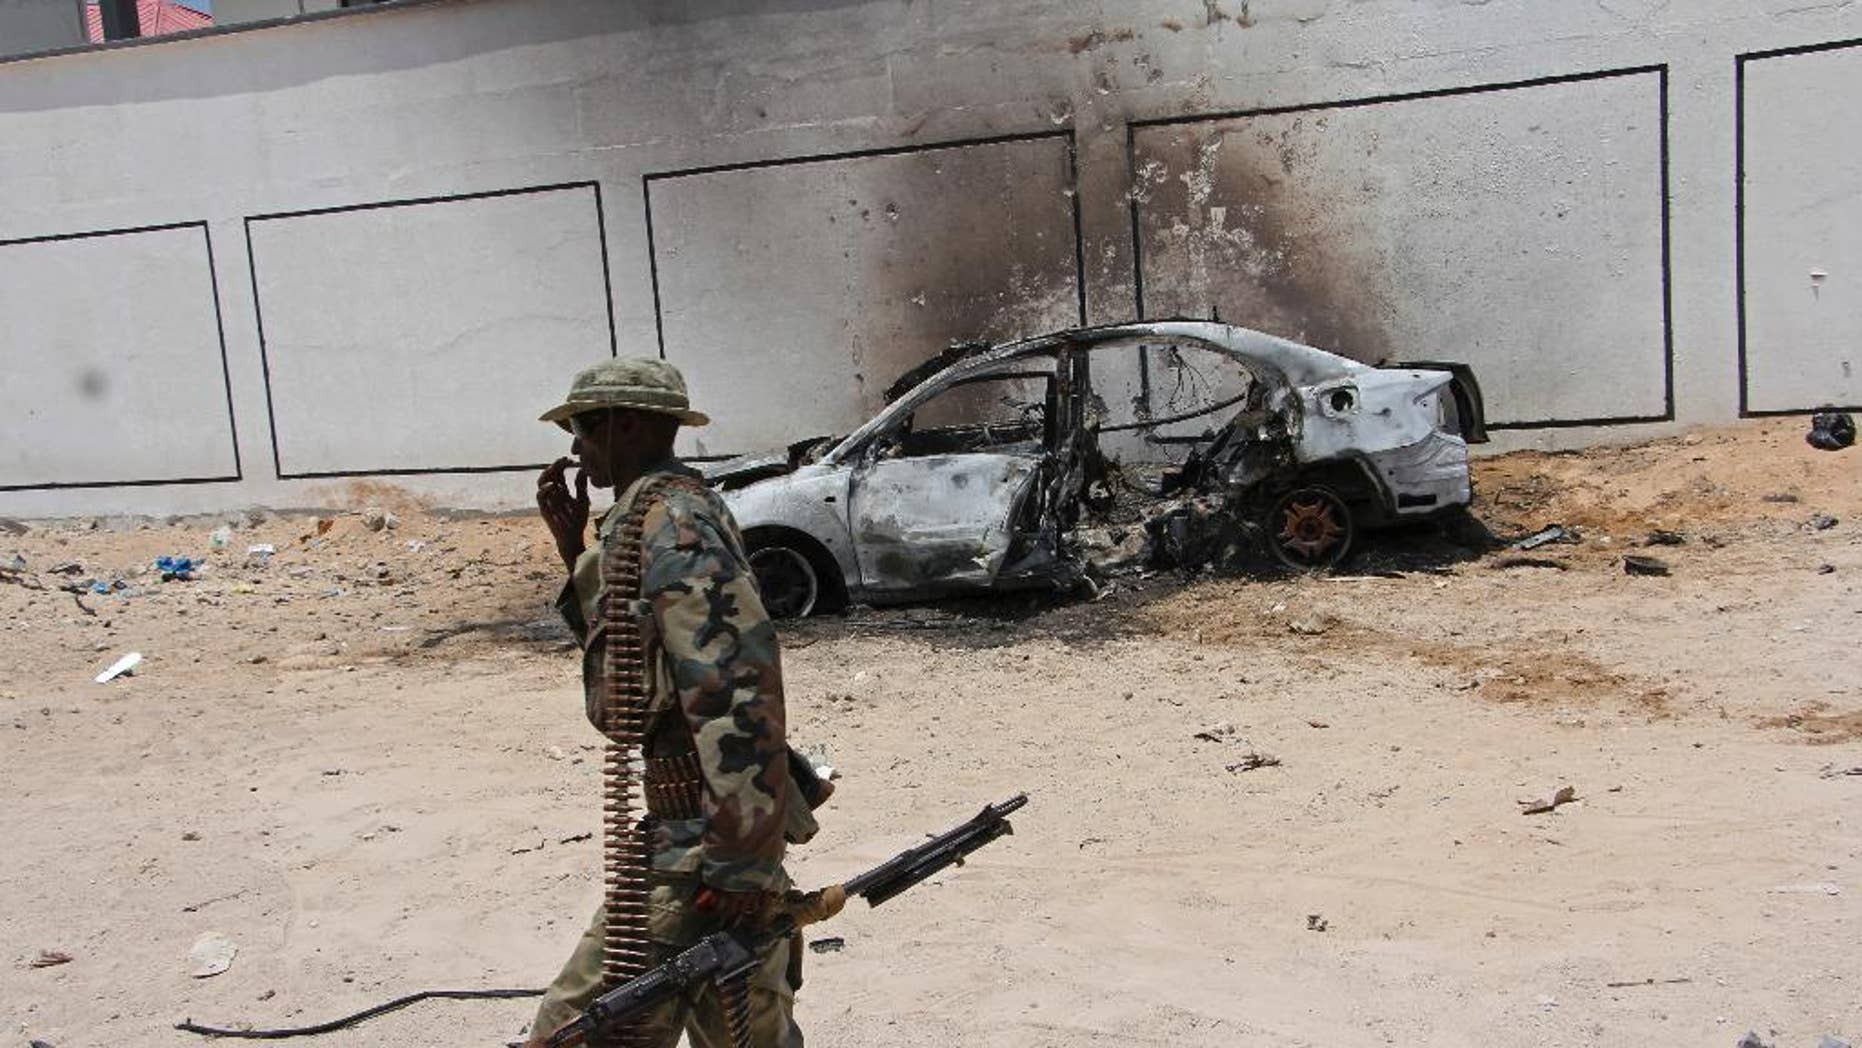 A Somali soldier walks near the wreckage of a car bomb blast near Aden Abdule international airport in Mogadishu, Somalia, Sunday, April, 16, 2017. A Somali police officer says a car bomb detonated near the Somali capital's airport. (AP Photo/Farah Abdi Warsameh)